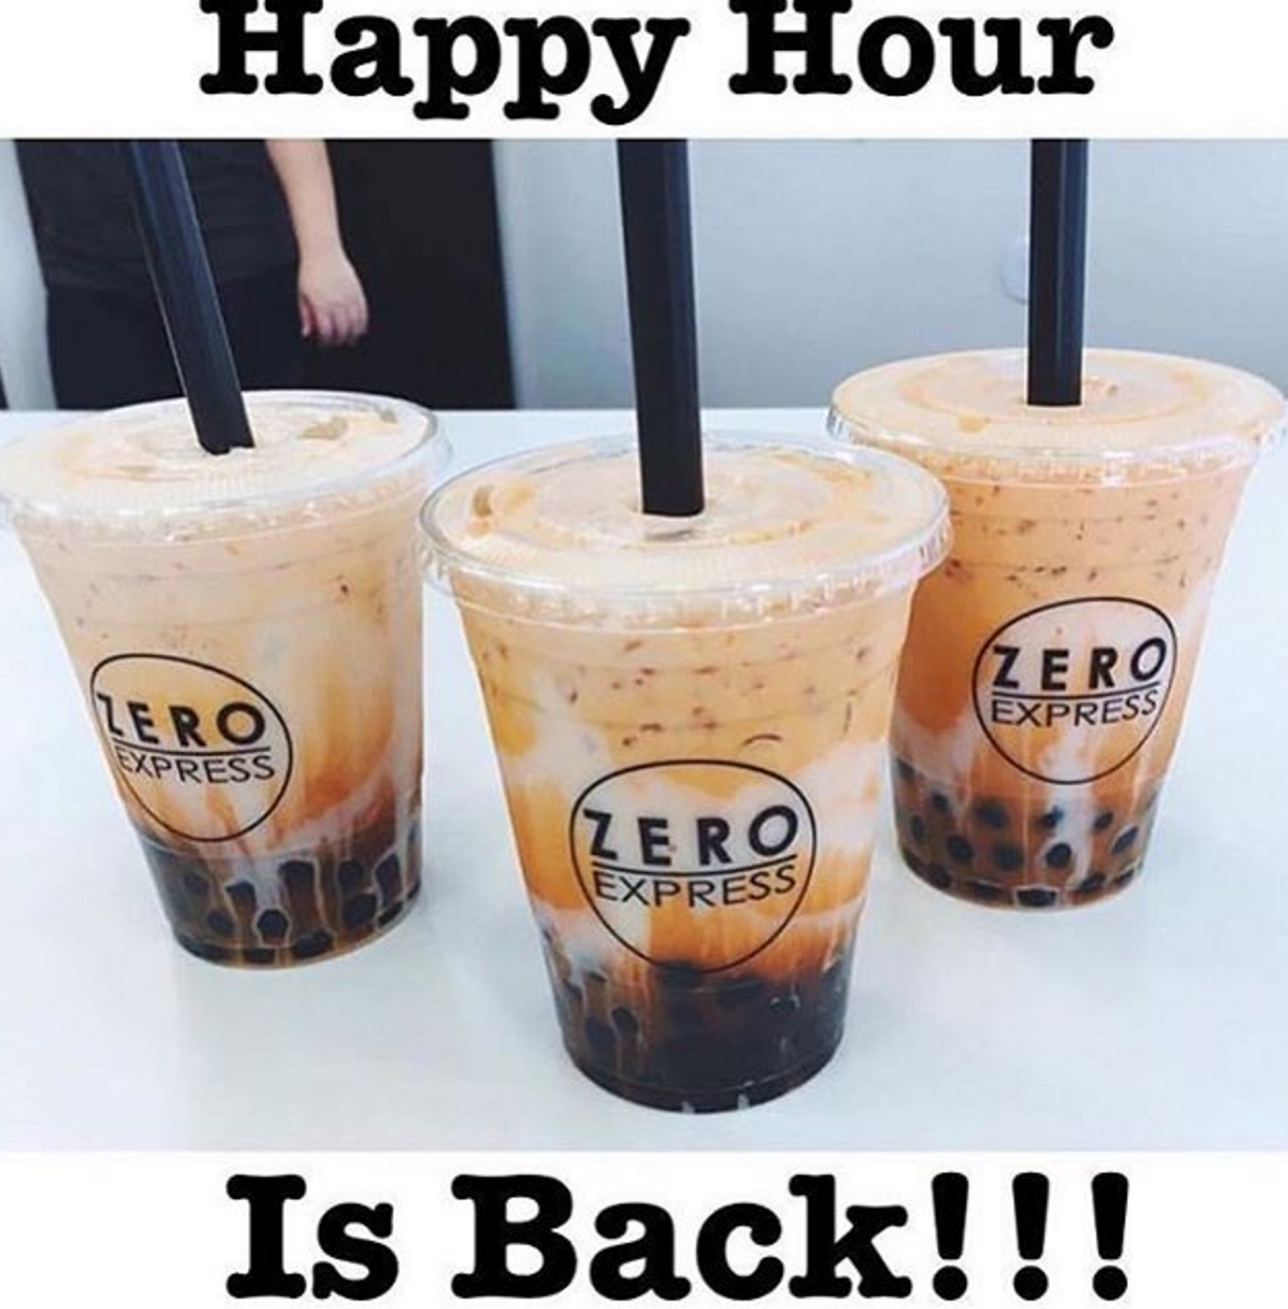 AUG 22 - 28:  BOGO FREE COFFEE AND TEAS @ ZERO EXPRESS - CSUF & CSULB